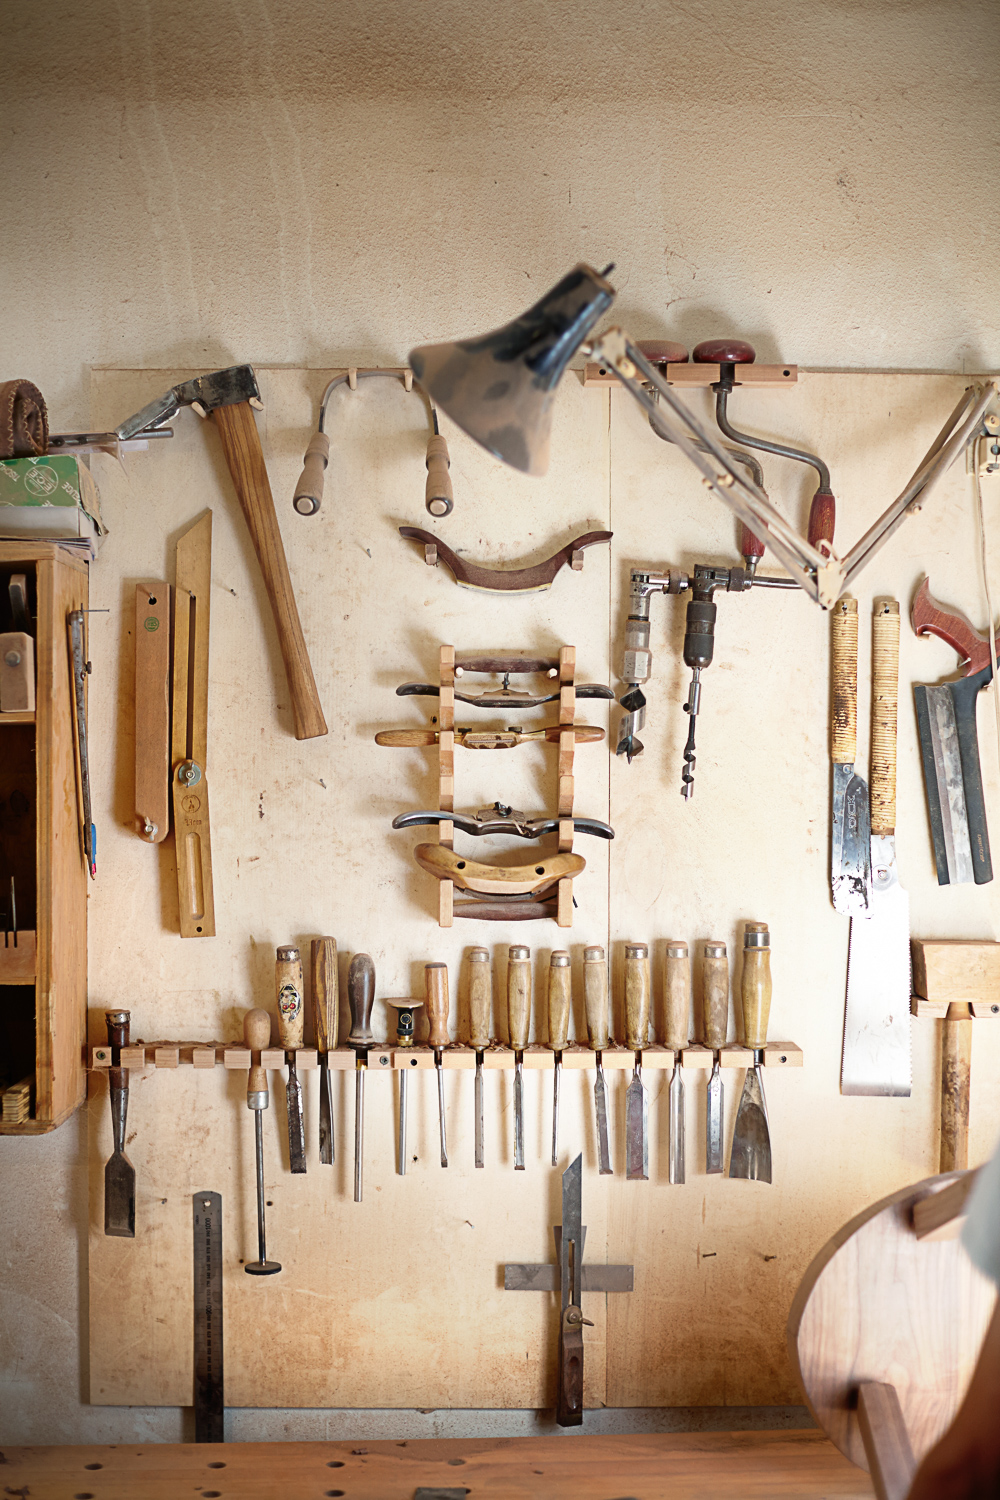 wall of wood working tools